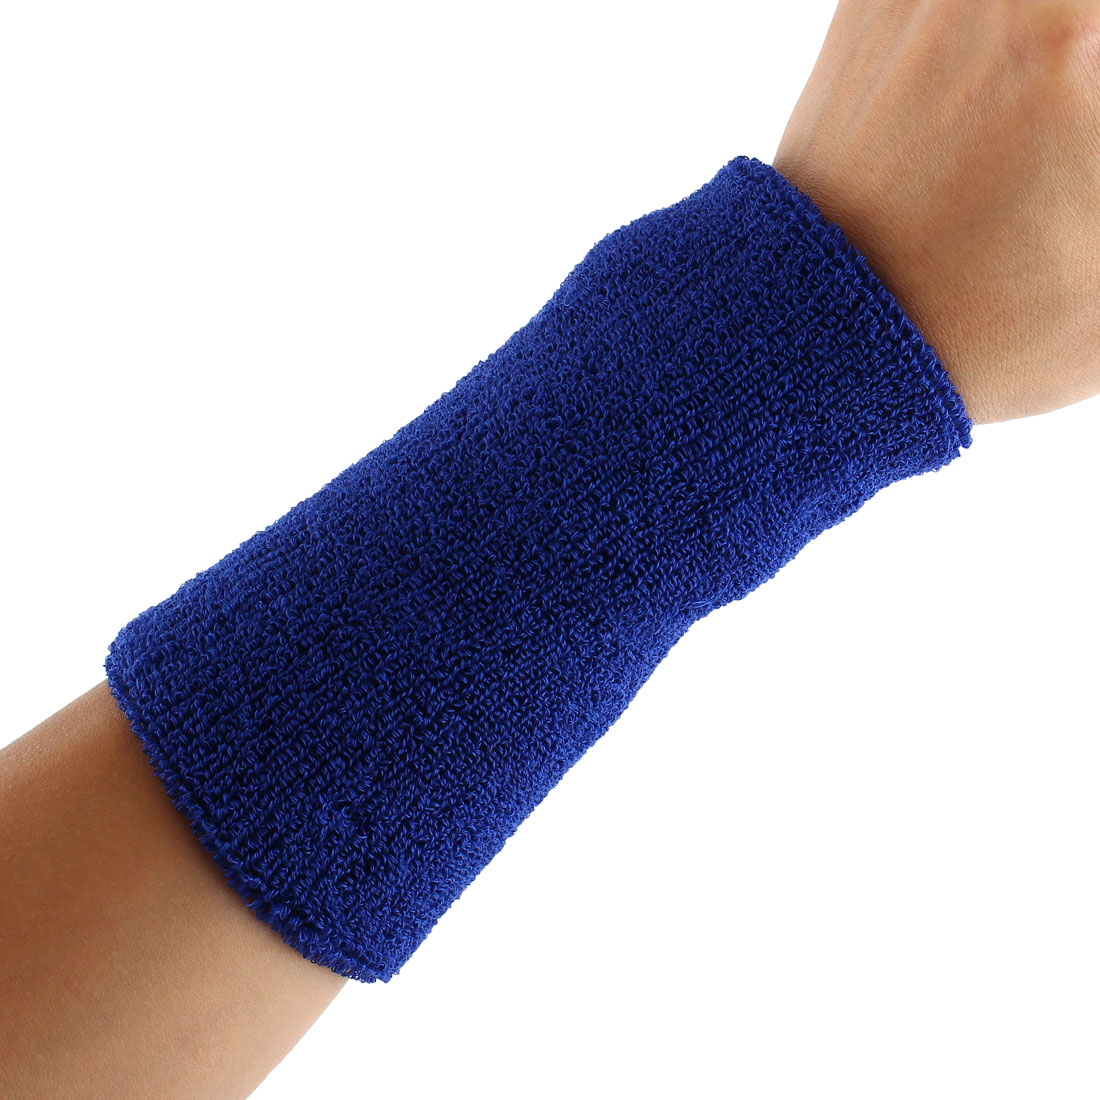 Exercises Basketball Running Hand Support Bandage Sweatband Wristband Sport Wrist Blue 15cm Long 2pcs